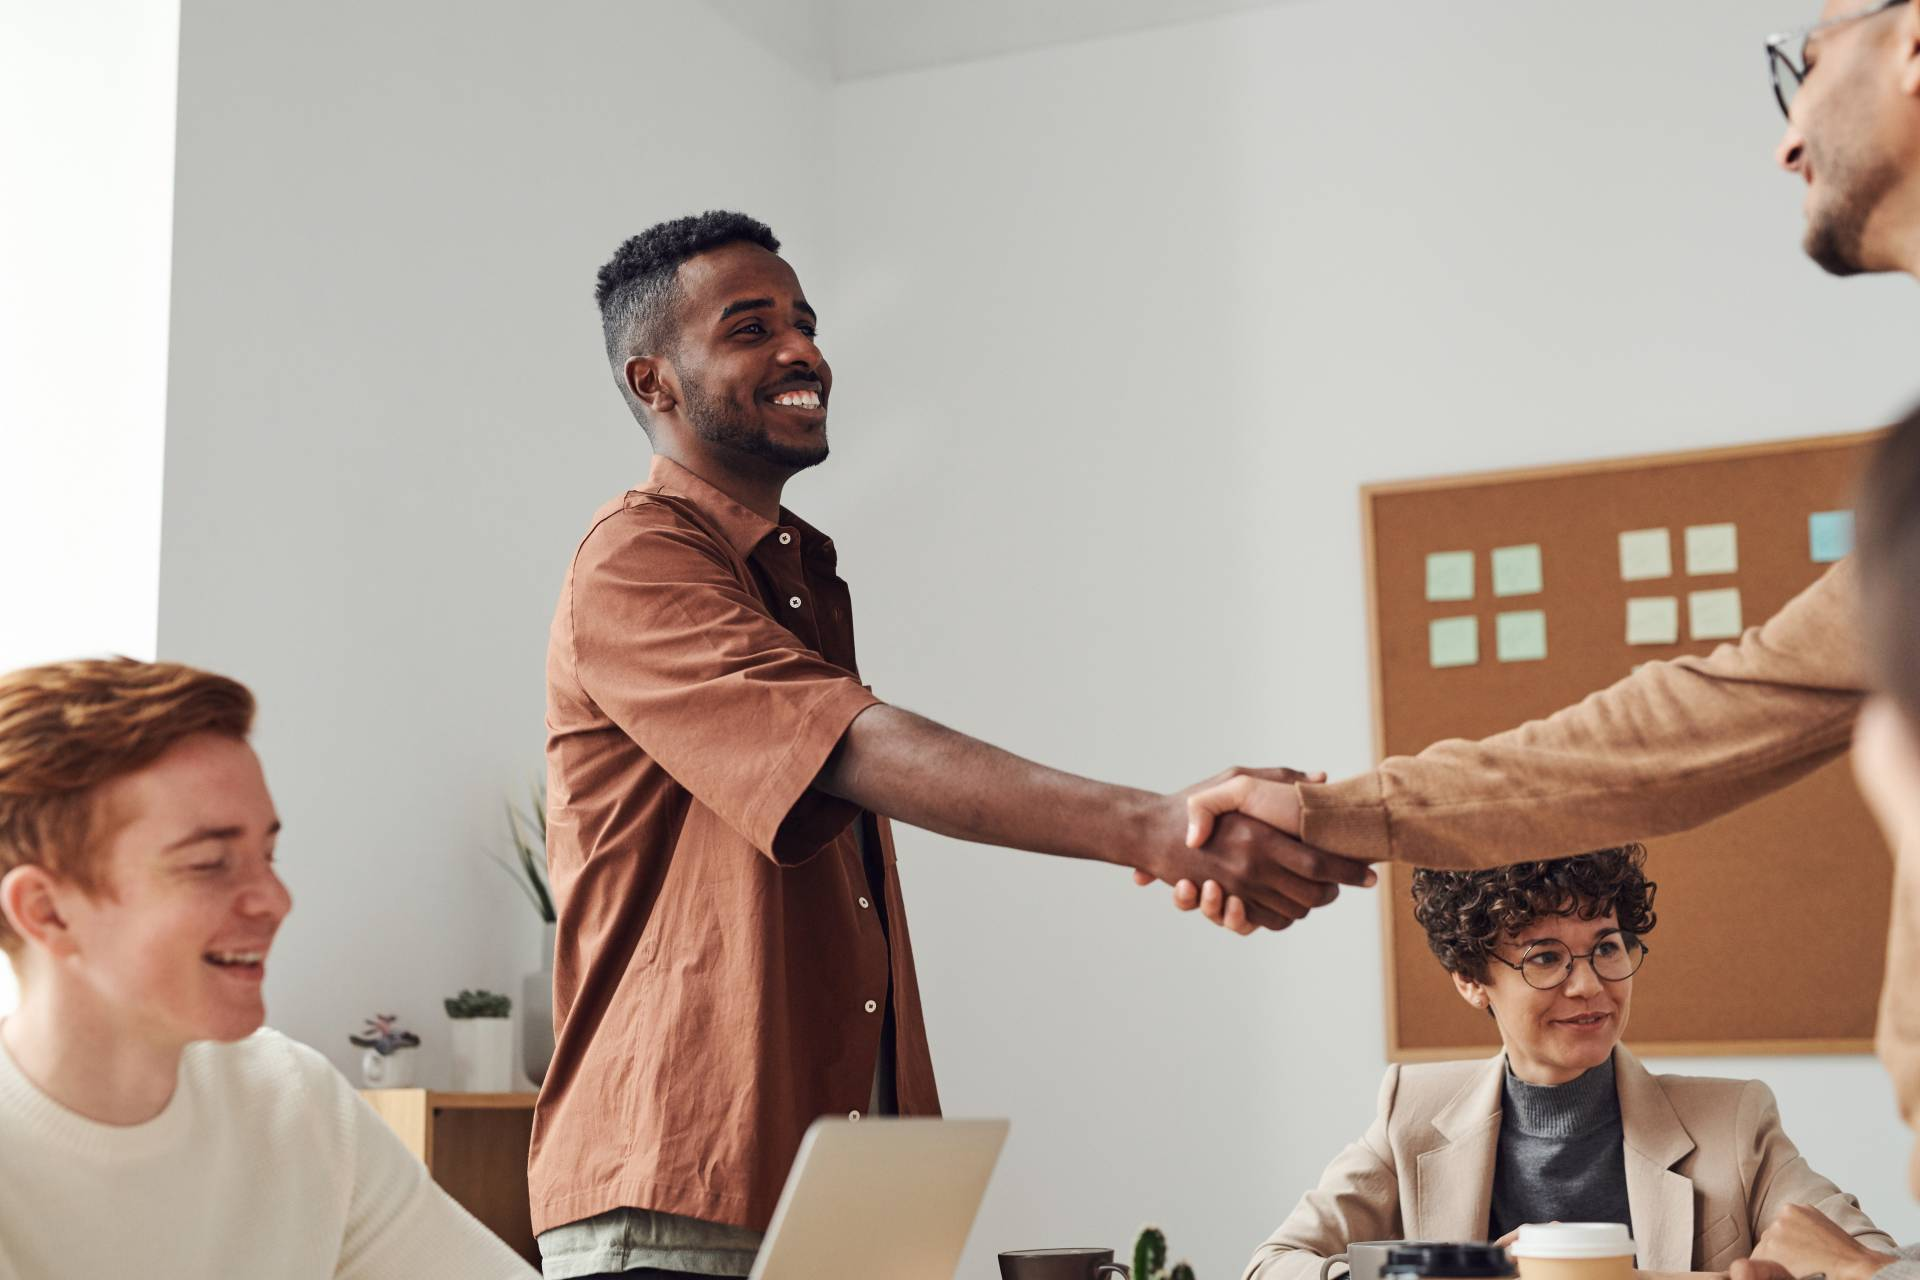 How to Build a Referral Relationship That's Built to Last